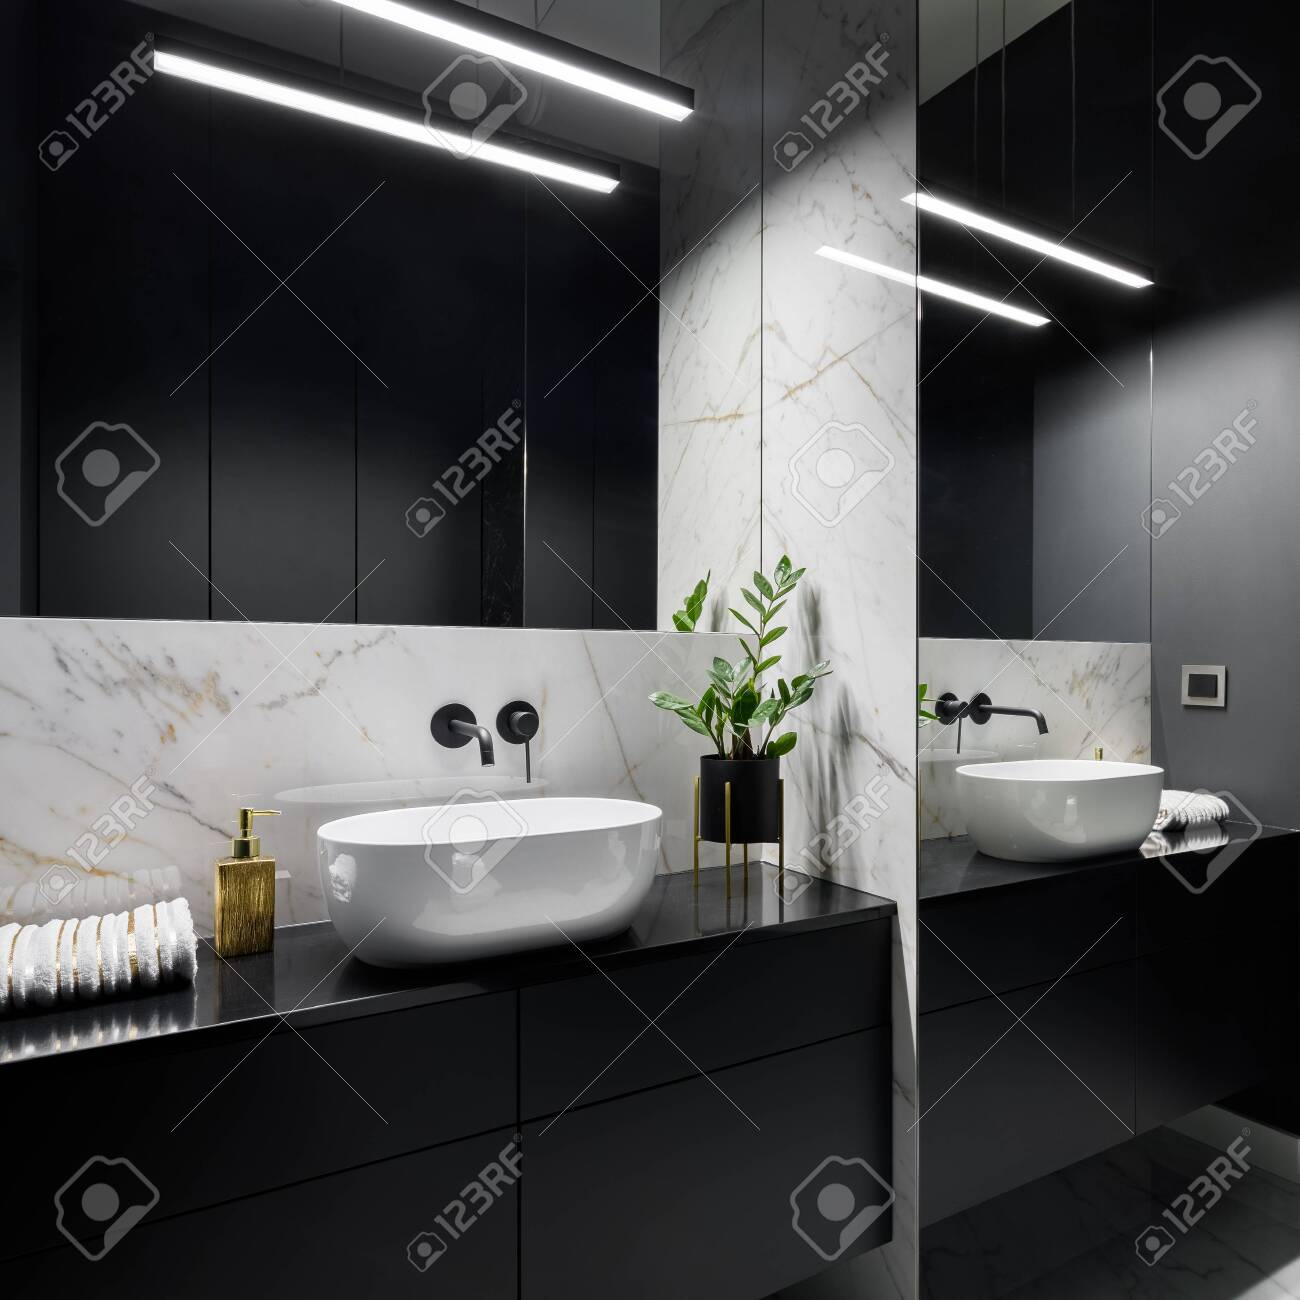 Elegant Black Bathroom With Mirror Wall Oval Washbasin And Decorative Marble Tiles Banque D Images Et Photos Libres De Droits Image 146481348